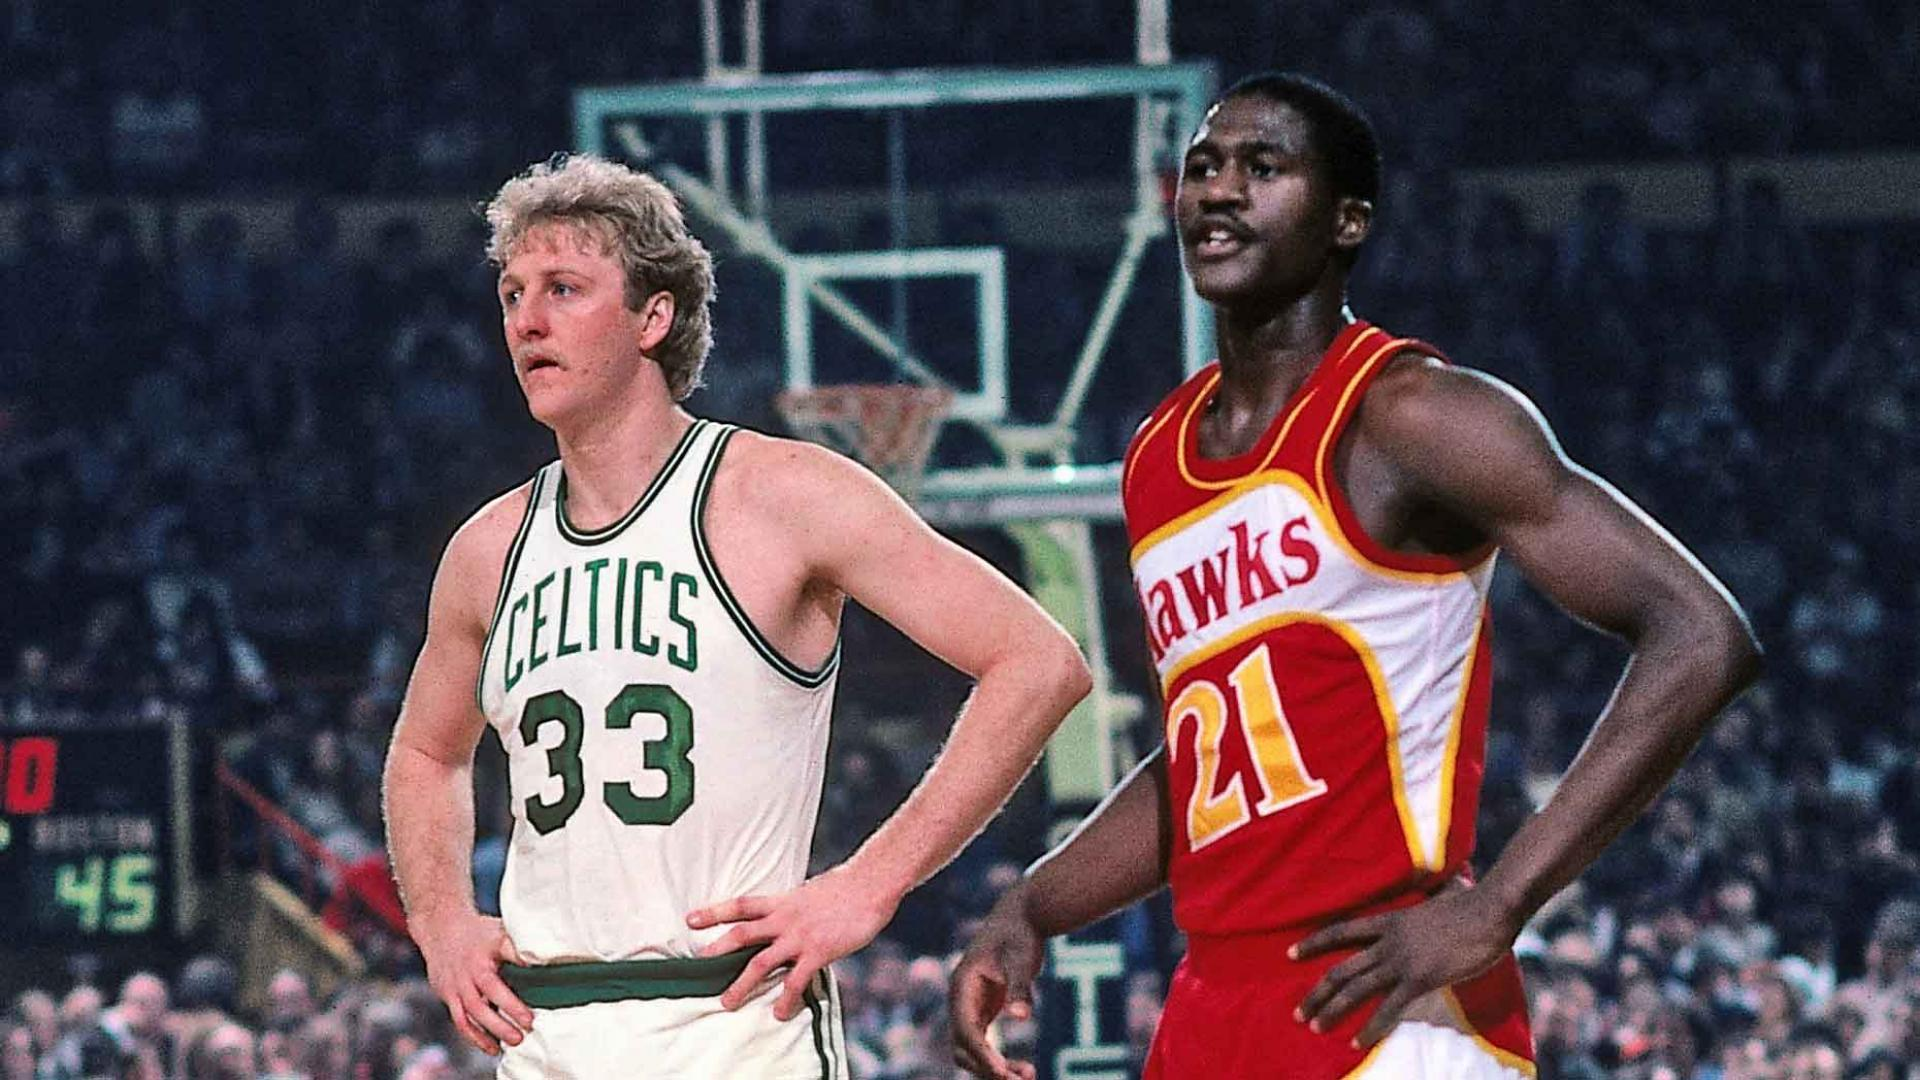 Top Moments: Larry Bird and Dominique Wilkins provide shootout for the ages